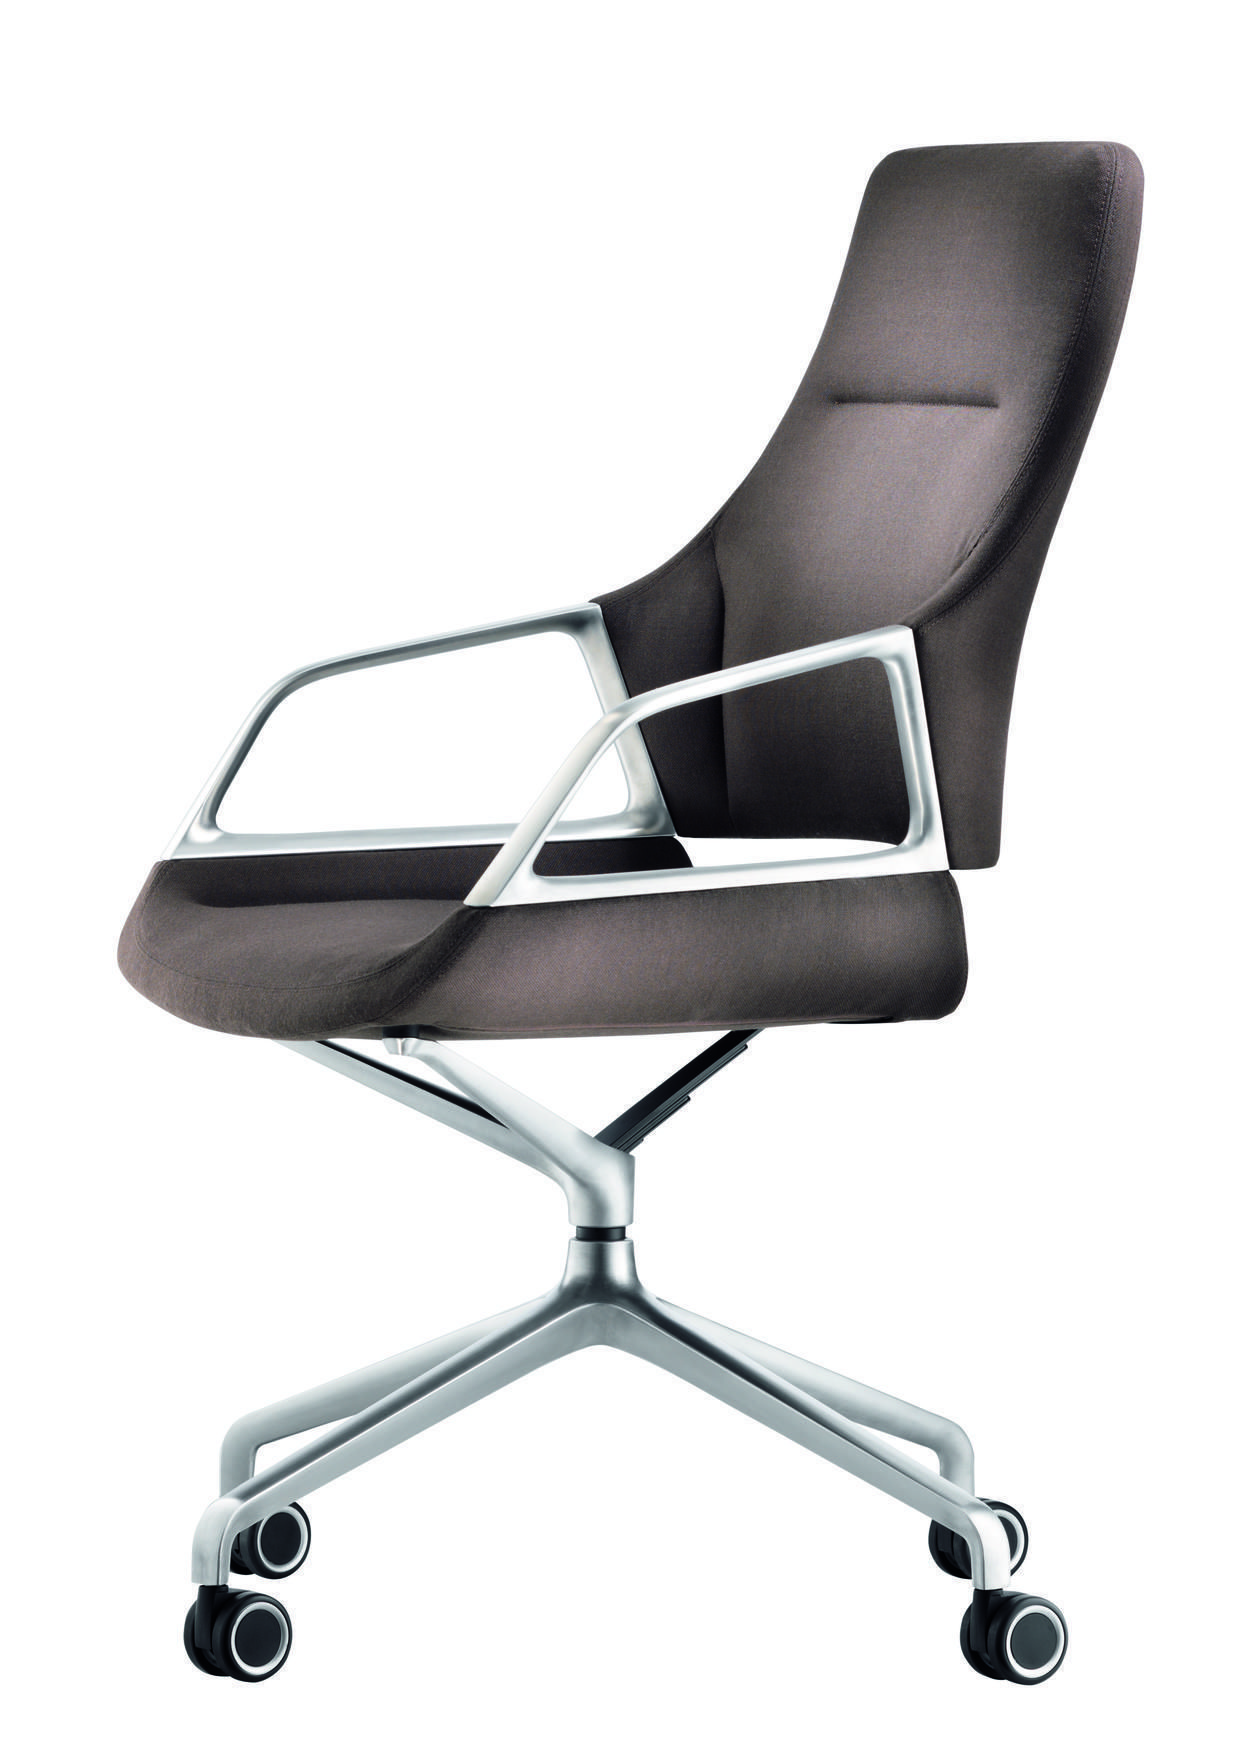 Wood conference chairs - Graph Conference Chair On Castors Design By Jehs Laub By Wilkhahn